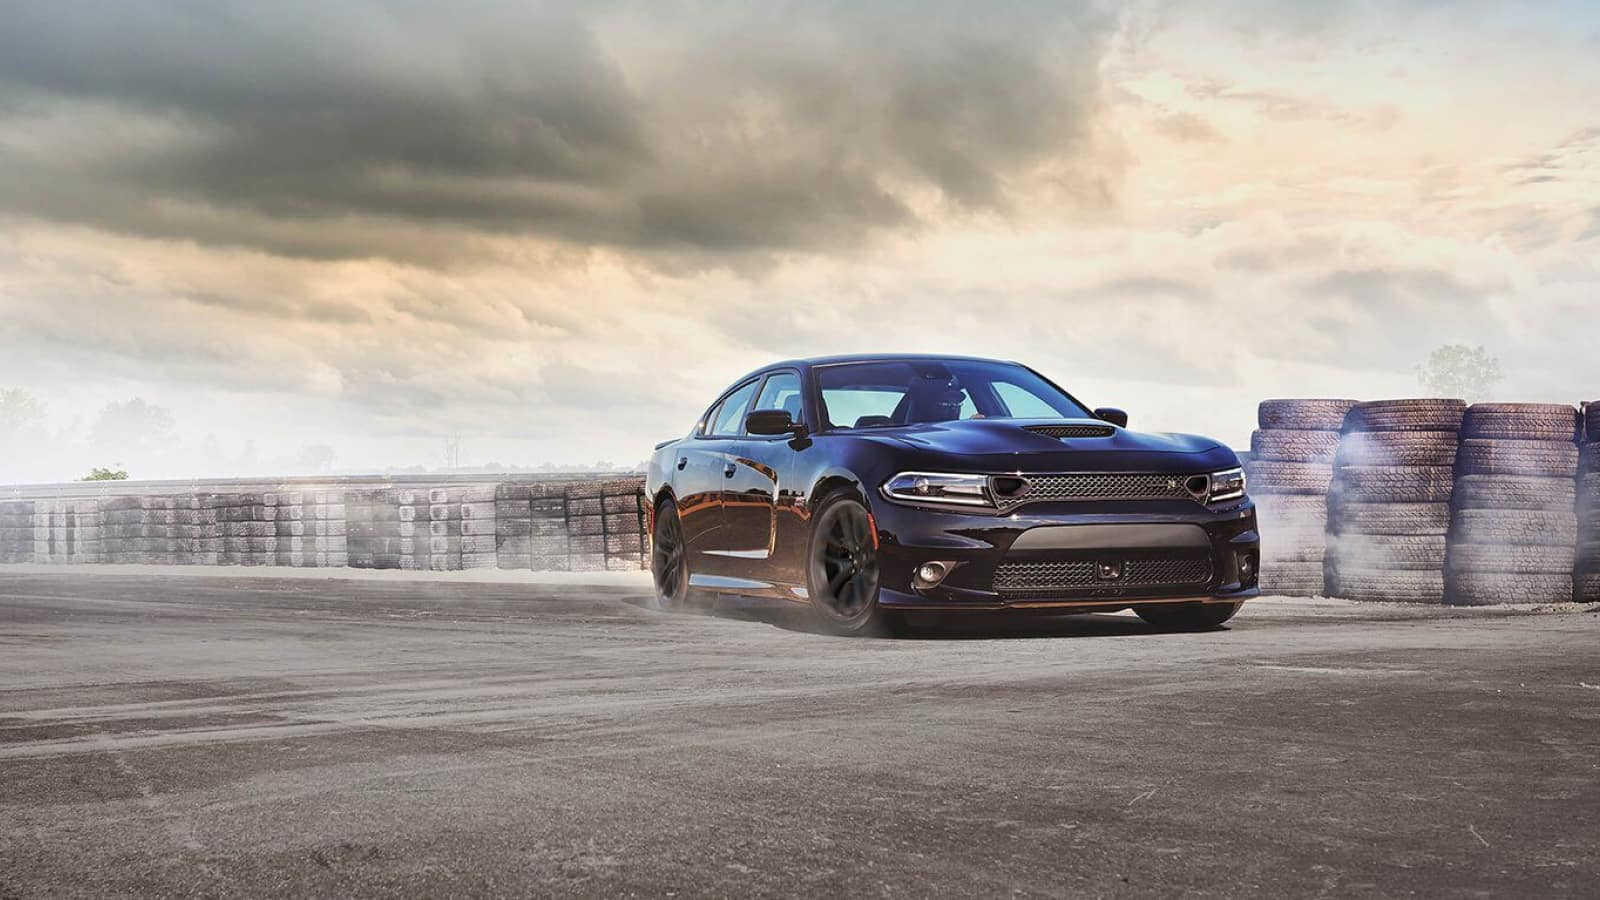 The sporty exterior of the 2020 Dodge Charger